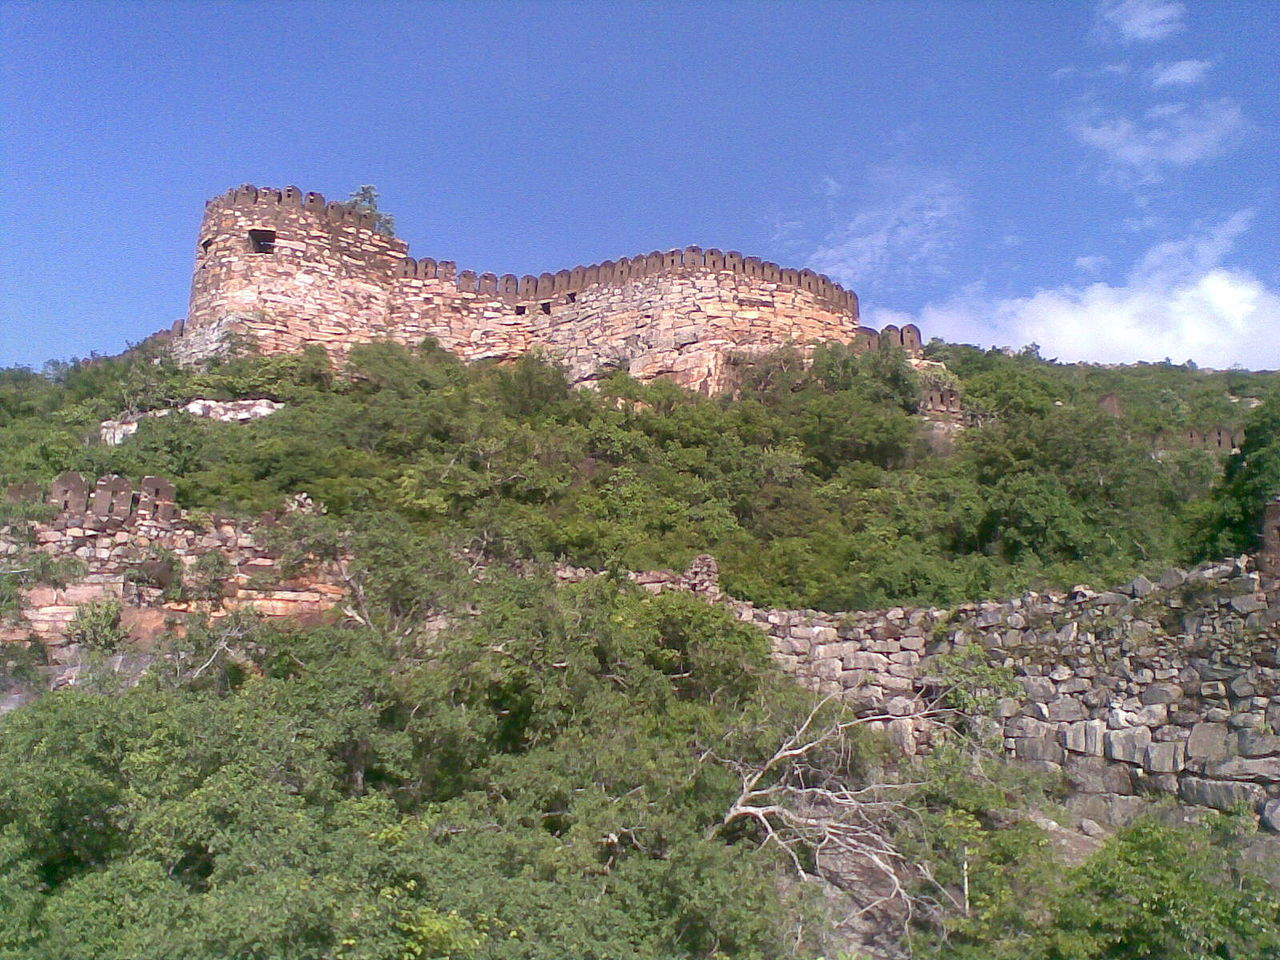 Udayagiri Fort in Kanyakumari